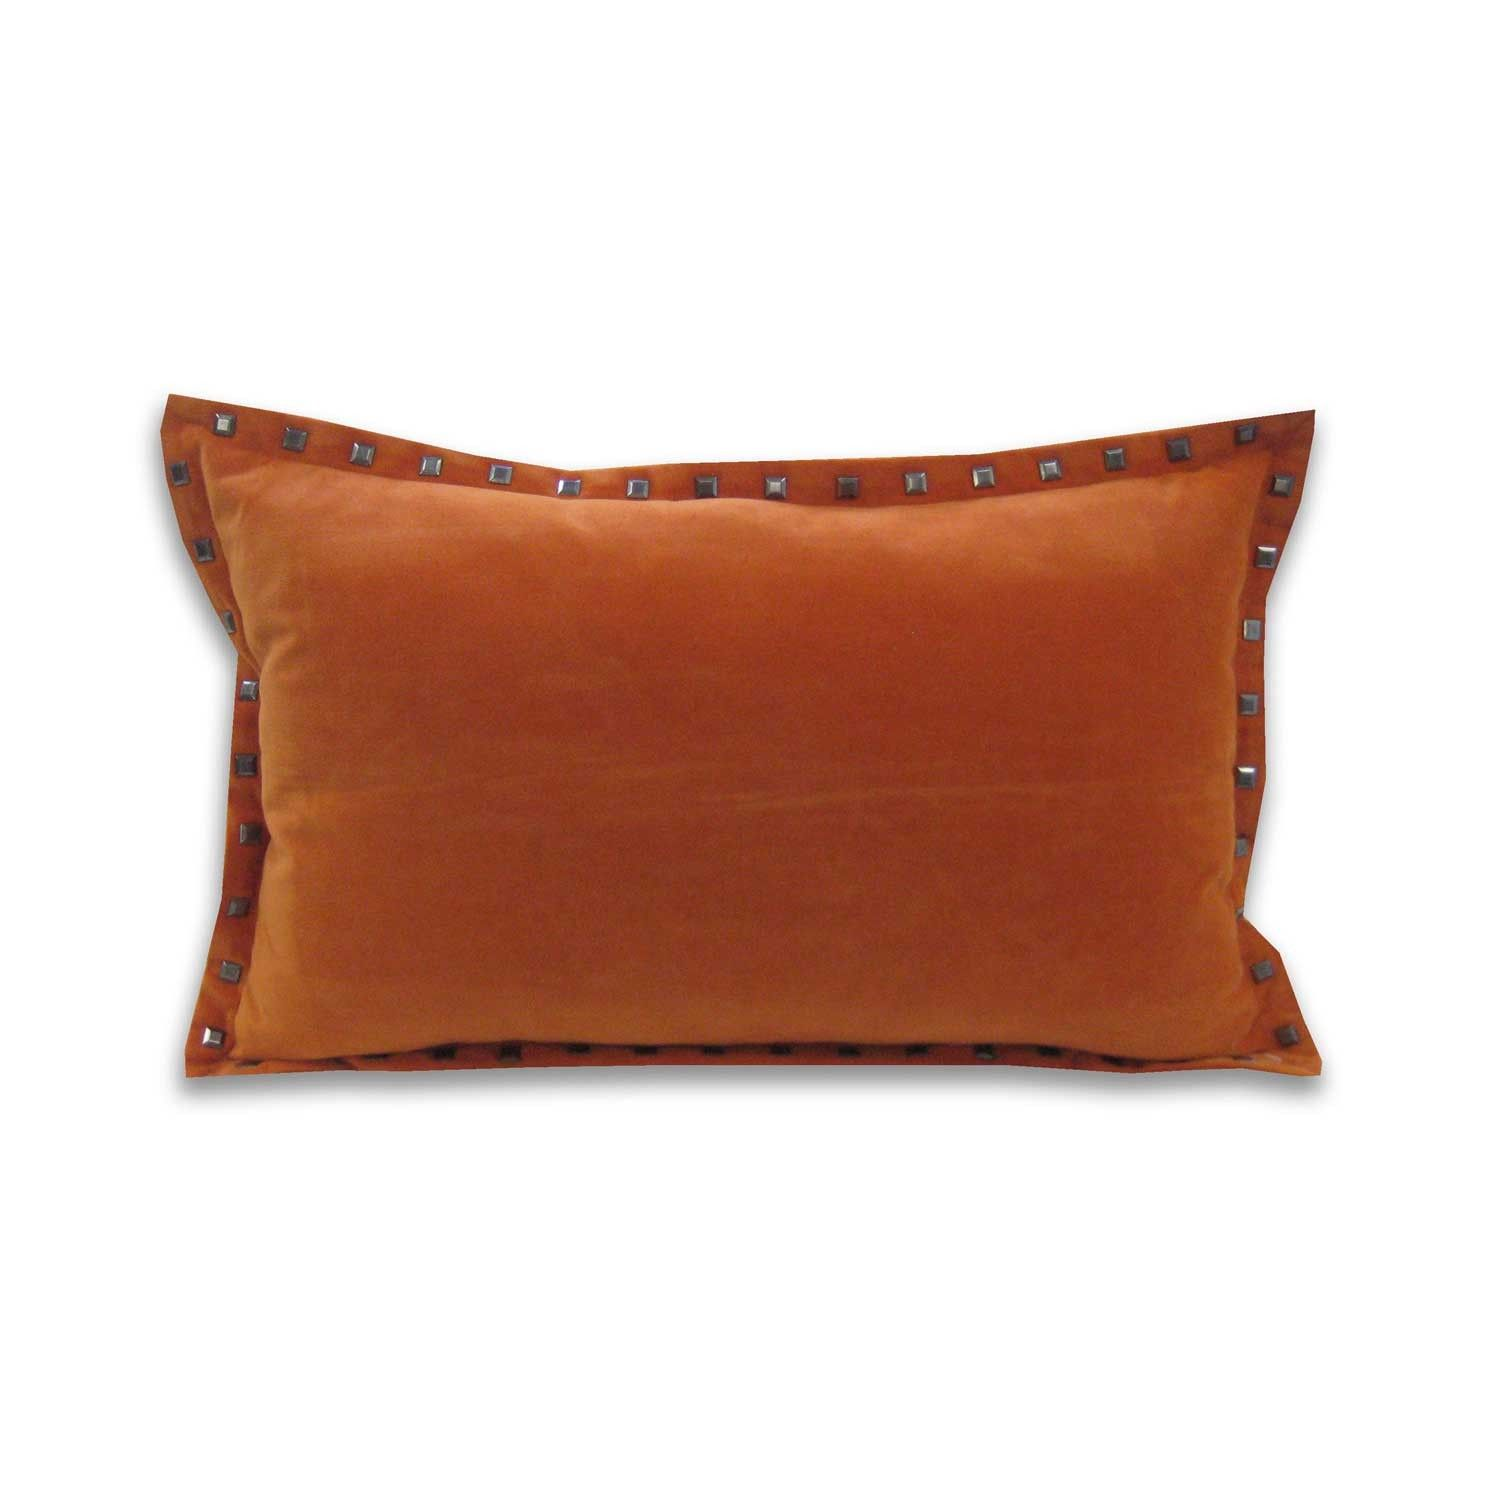 Payton Velvet Pillow - Burnt Orange - Stay à  la mode with this rocker chic silver studded pillow.